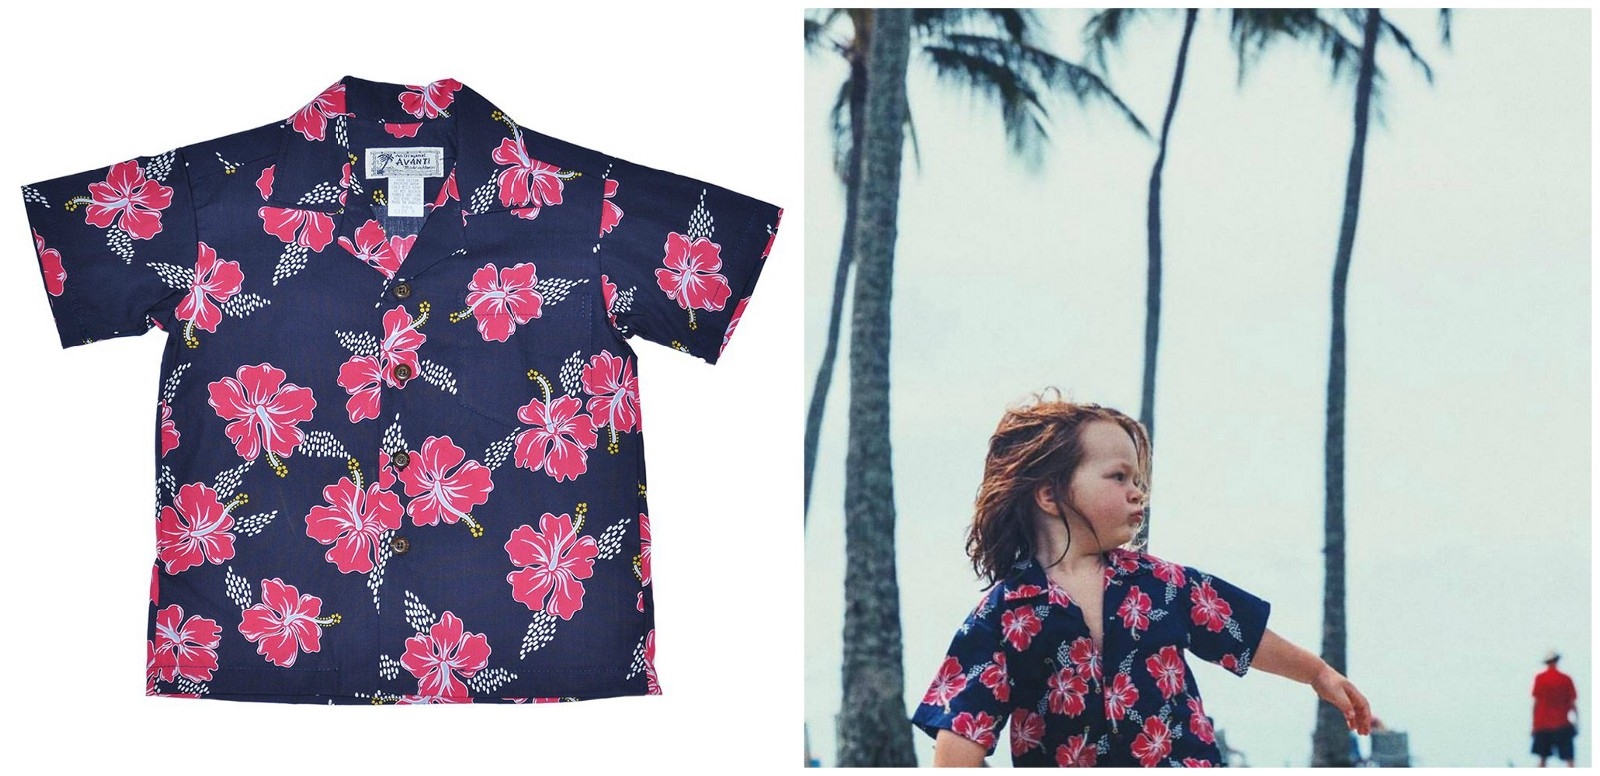 469a412f Hibiscus Trails Indigo Boy's Shirt: Nothing can beat the charm and  brightness of these kids Hawaiian shirt. The color combination speaks for  itself.